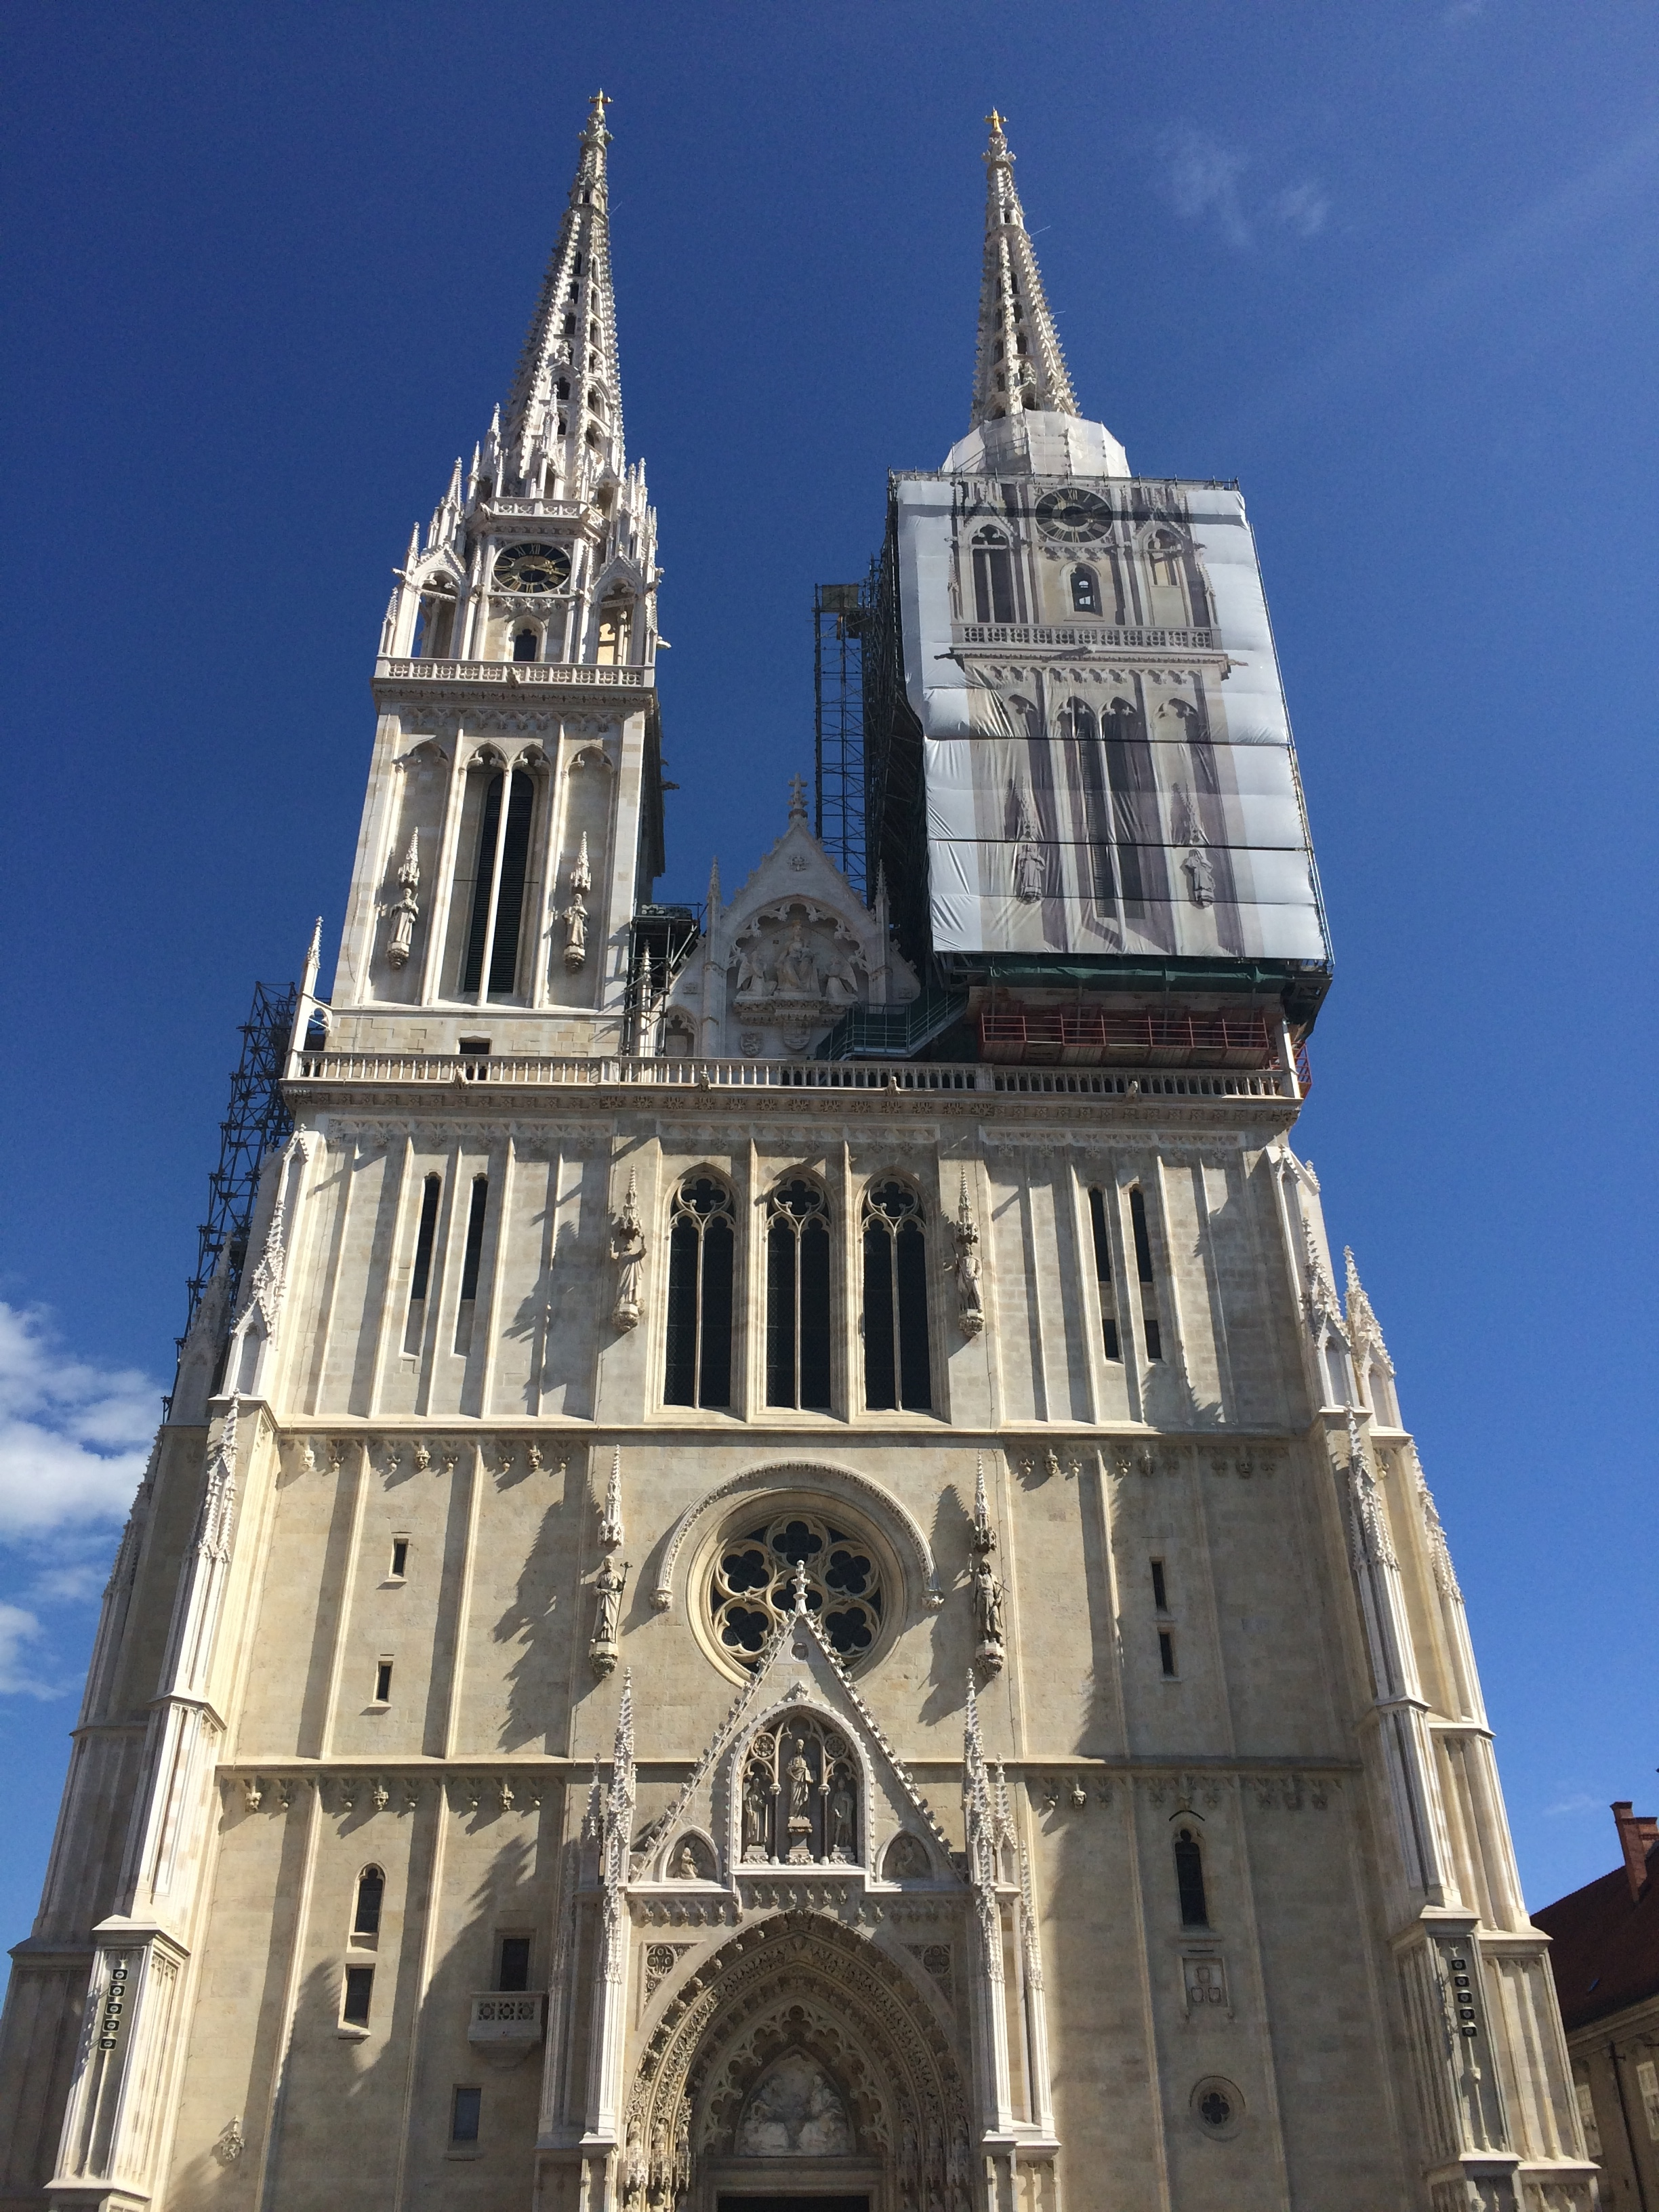 Zagreb Cathedral. It seems every cathedral I cross these days is under construction.